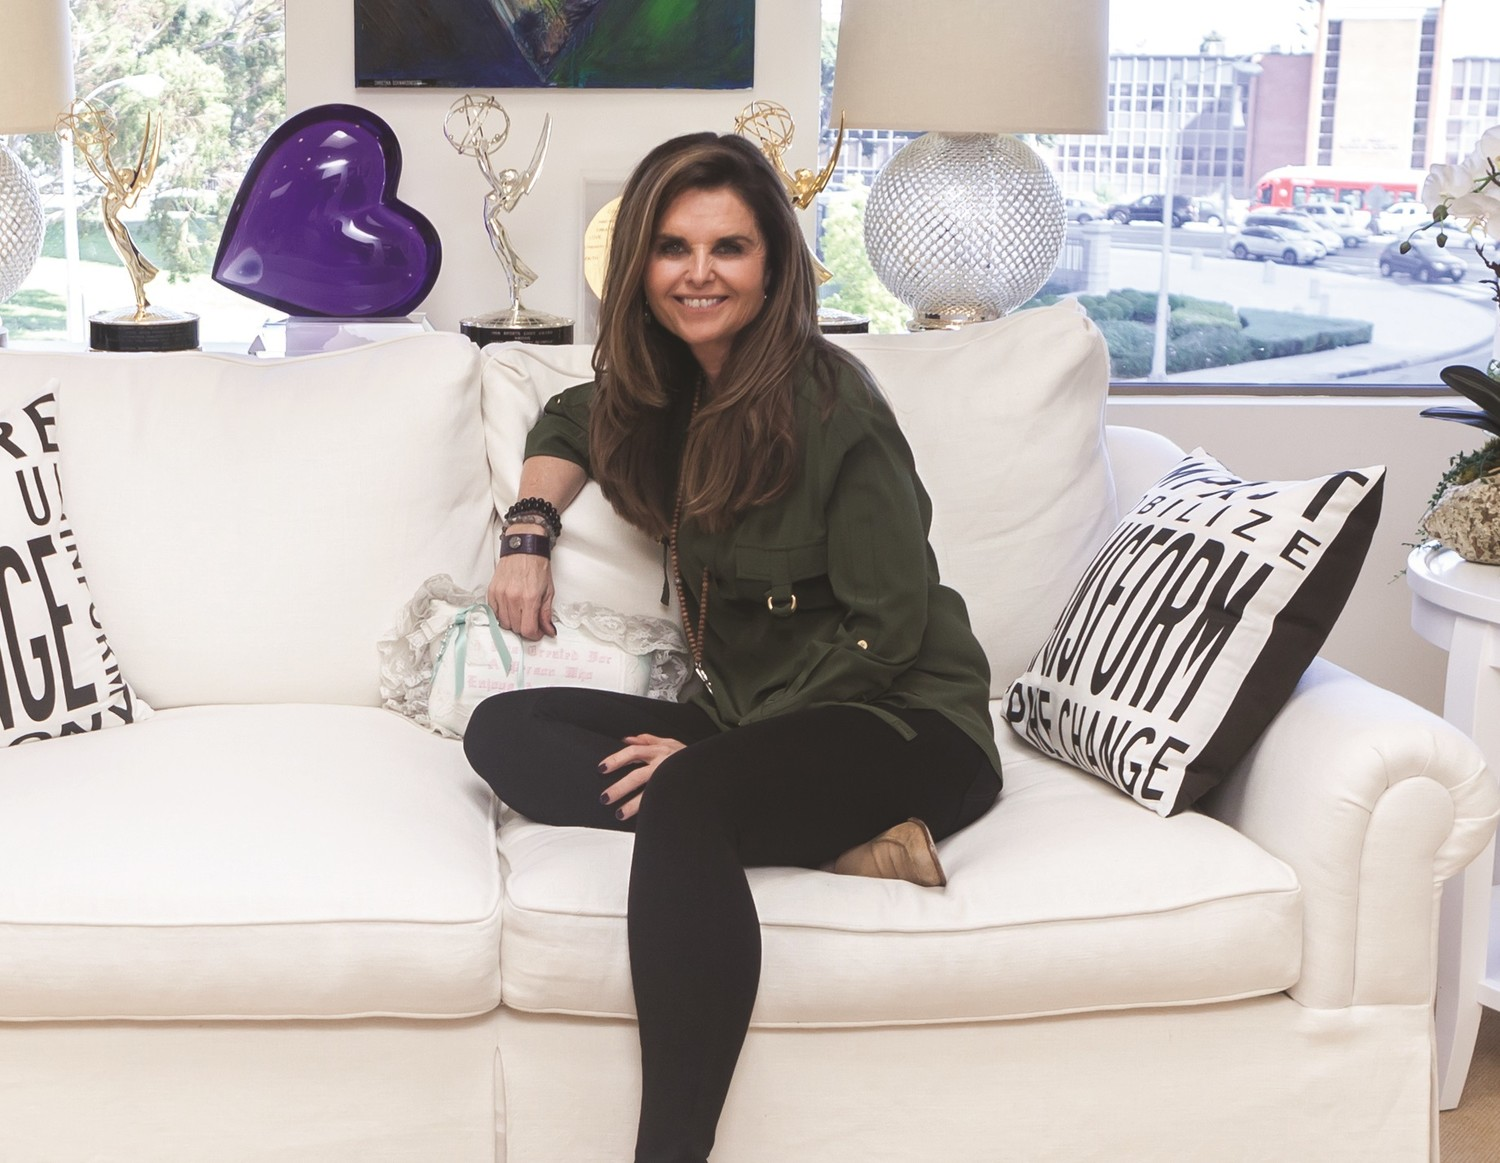 Maria Shriver will share her wisdom and guidance in an interview and book signing at the Madison Theatre next week.